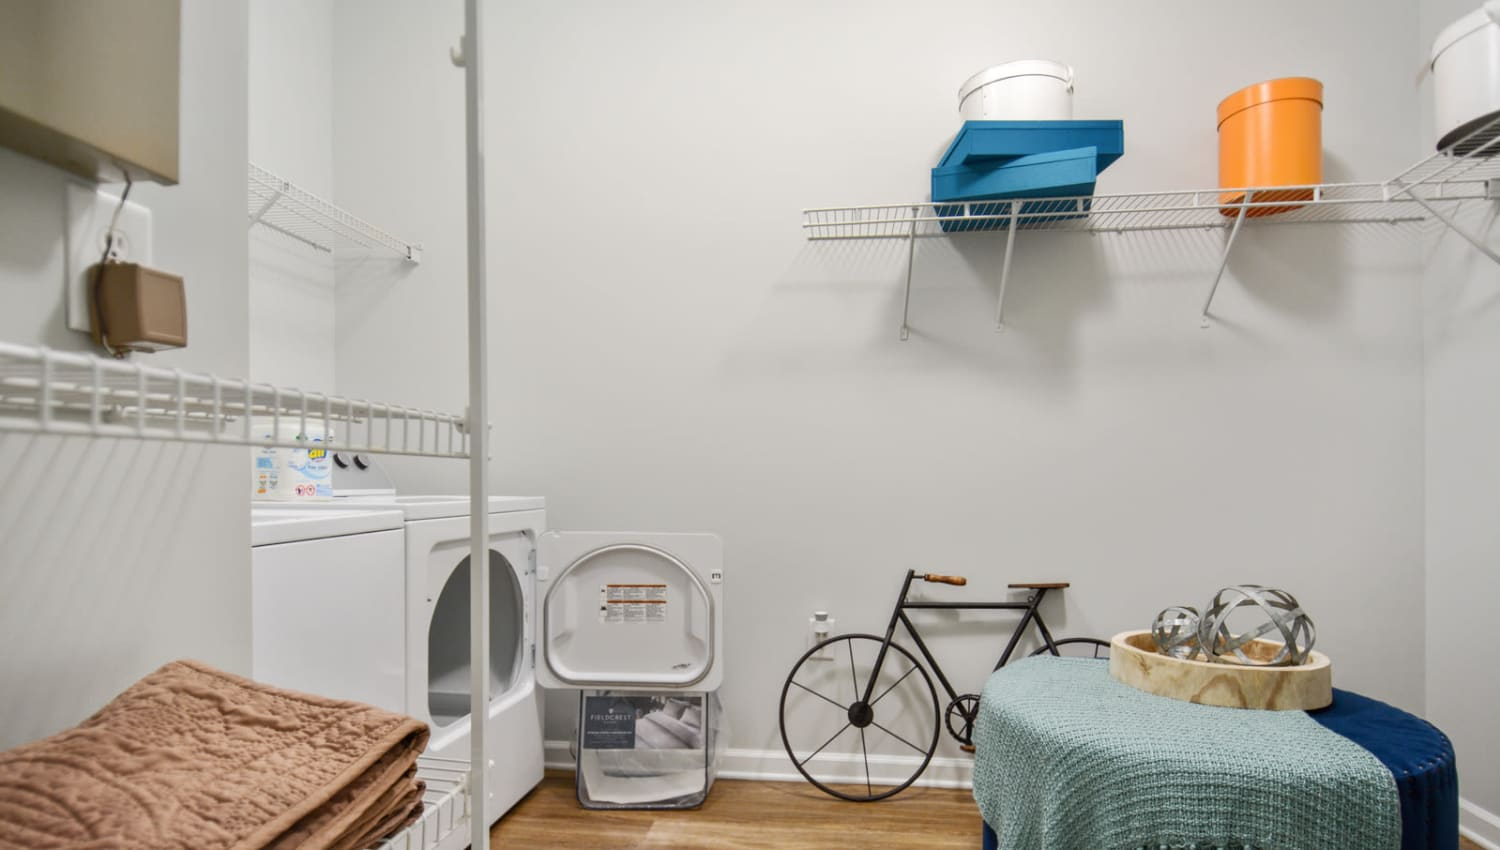 Spacious laundry room with shelving for storage in a model apartment at Ellington Midtown in Atlanta, Georgia